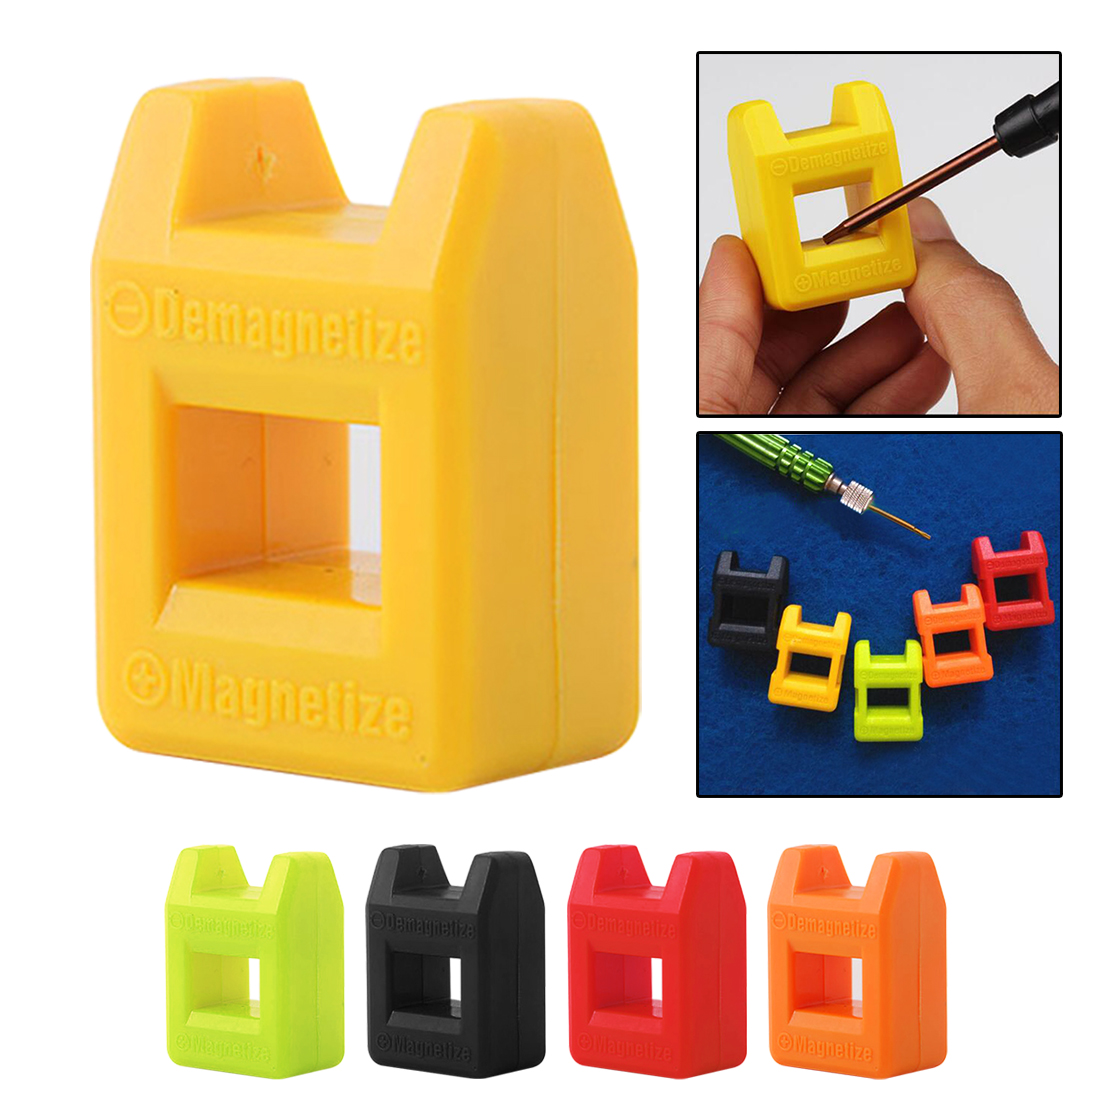 все цены на Magnetizer Demagnetizer 2 in 1 Tool Screwdriver Magnetic High Quality Colour Send Random Mini - Fast